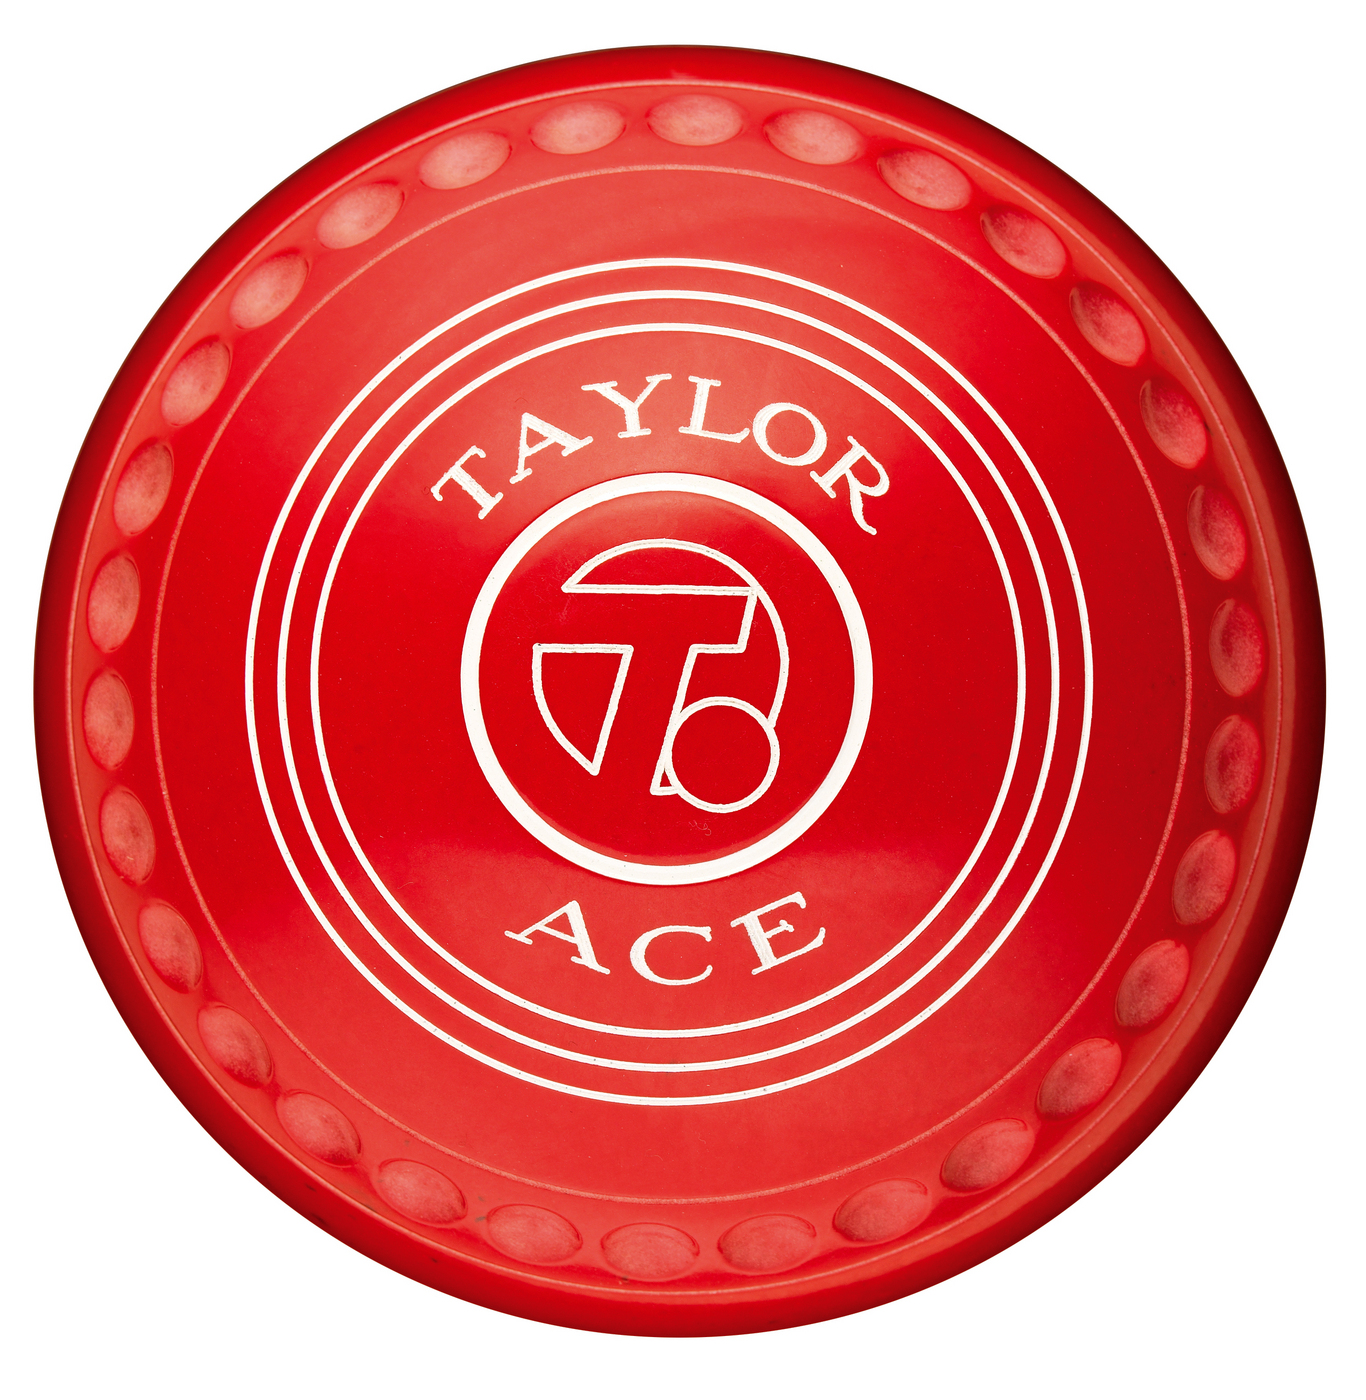 Taylor Ace (Colour)